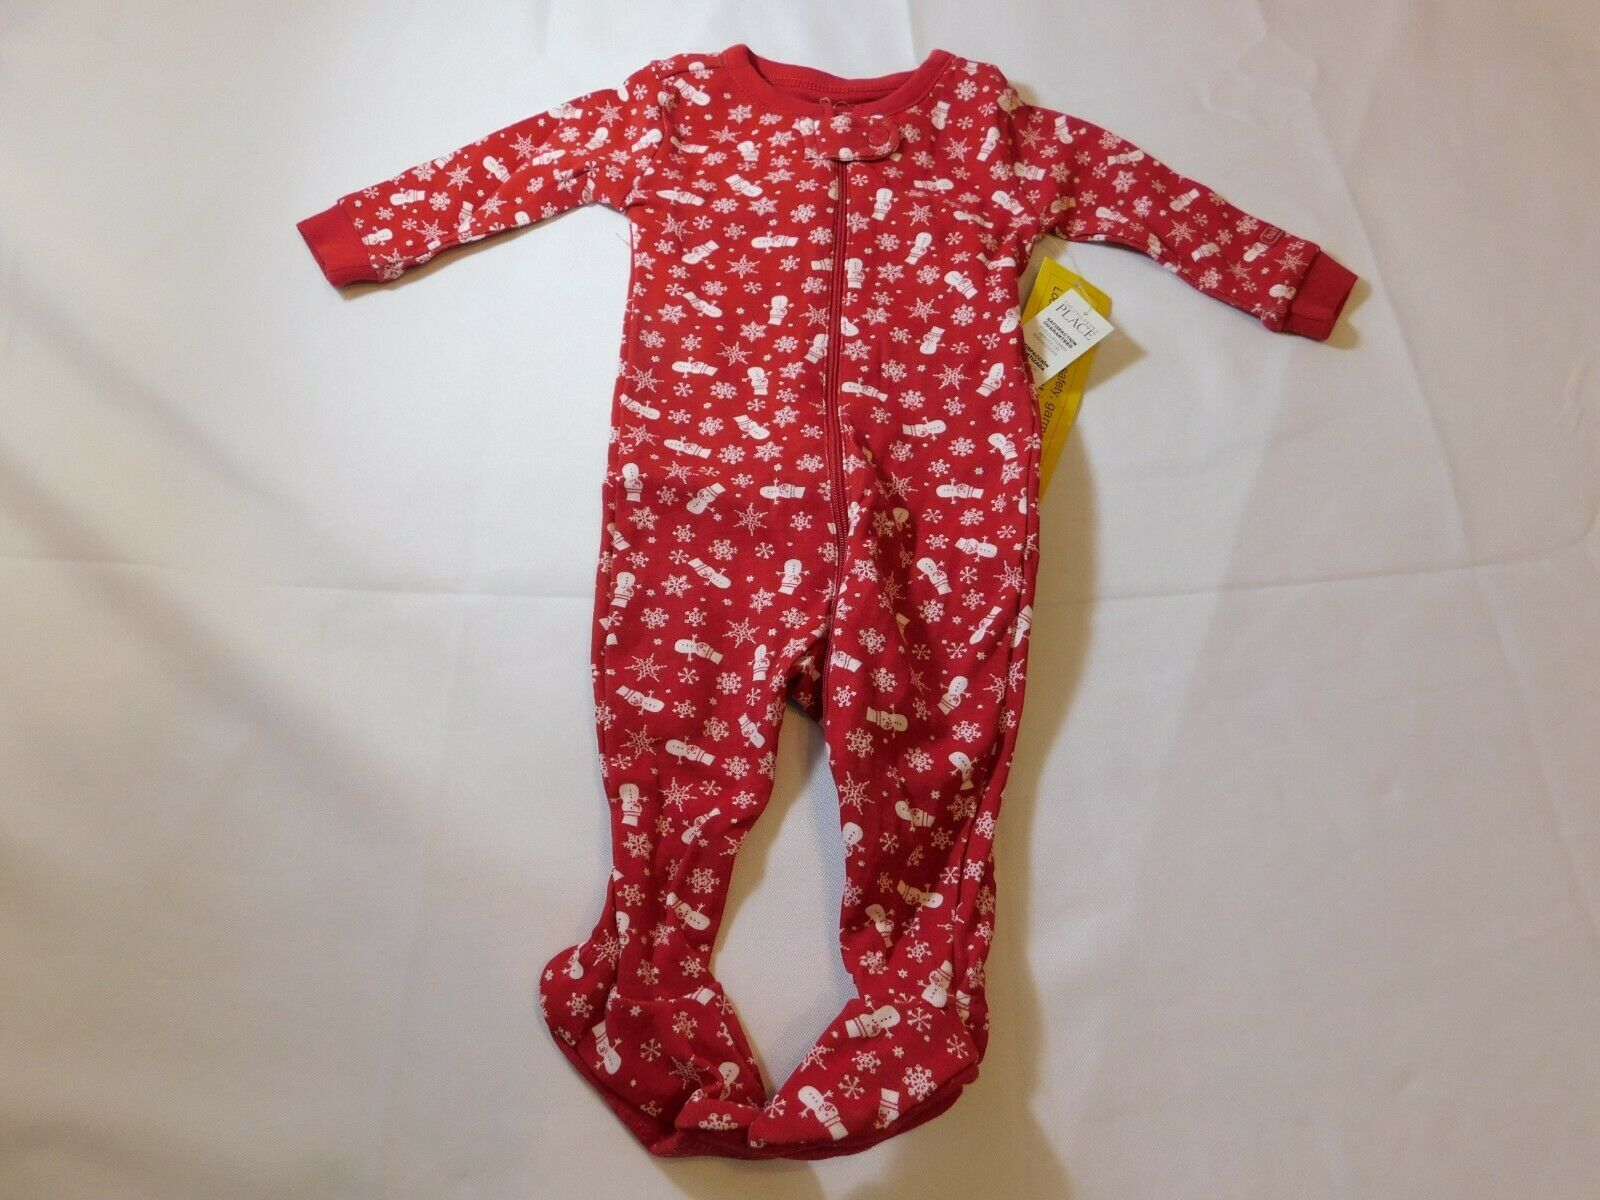 The Children's Place Baby Boy's Footie PJ Pajamas Size 0-3 Months Christmas NWT - $16.21